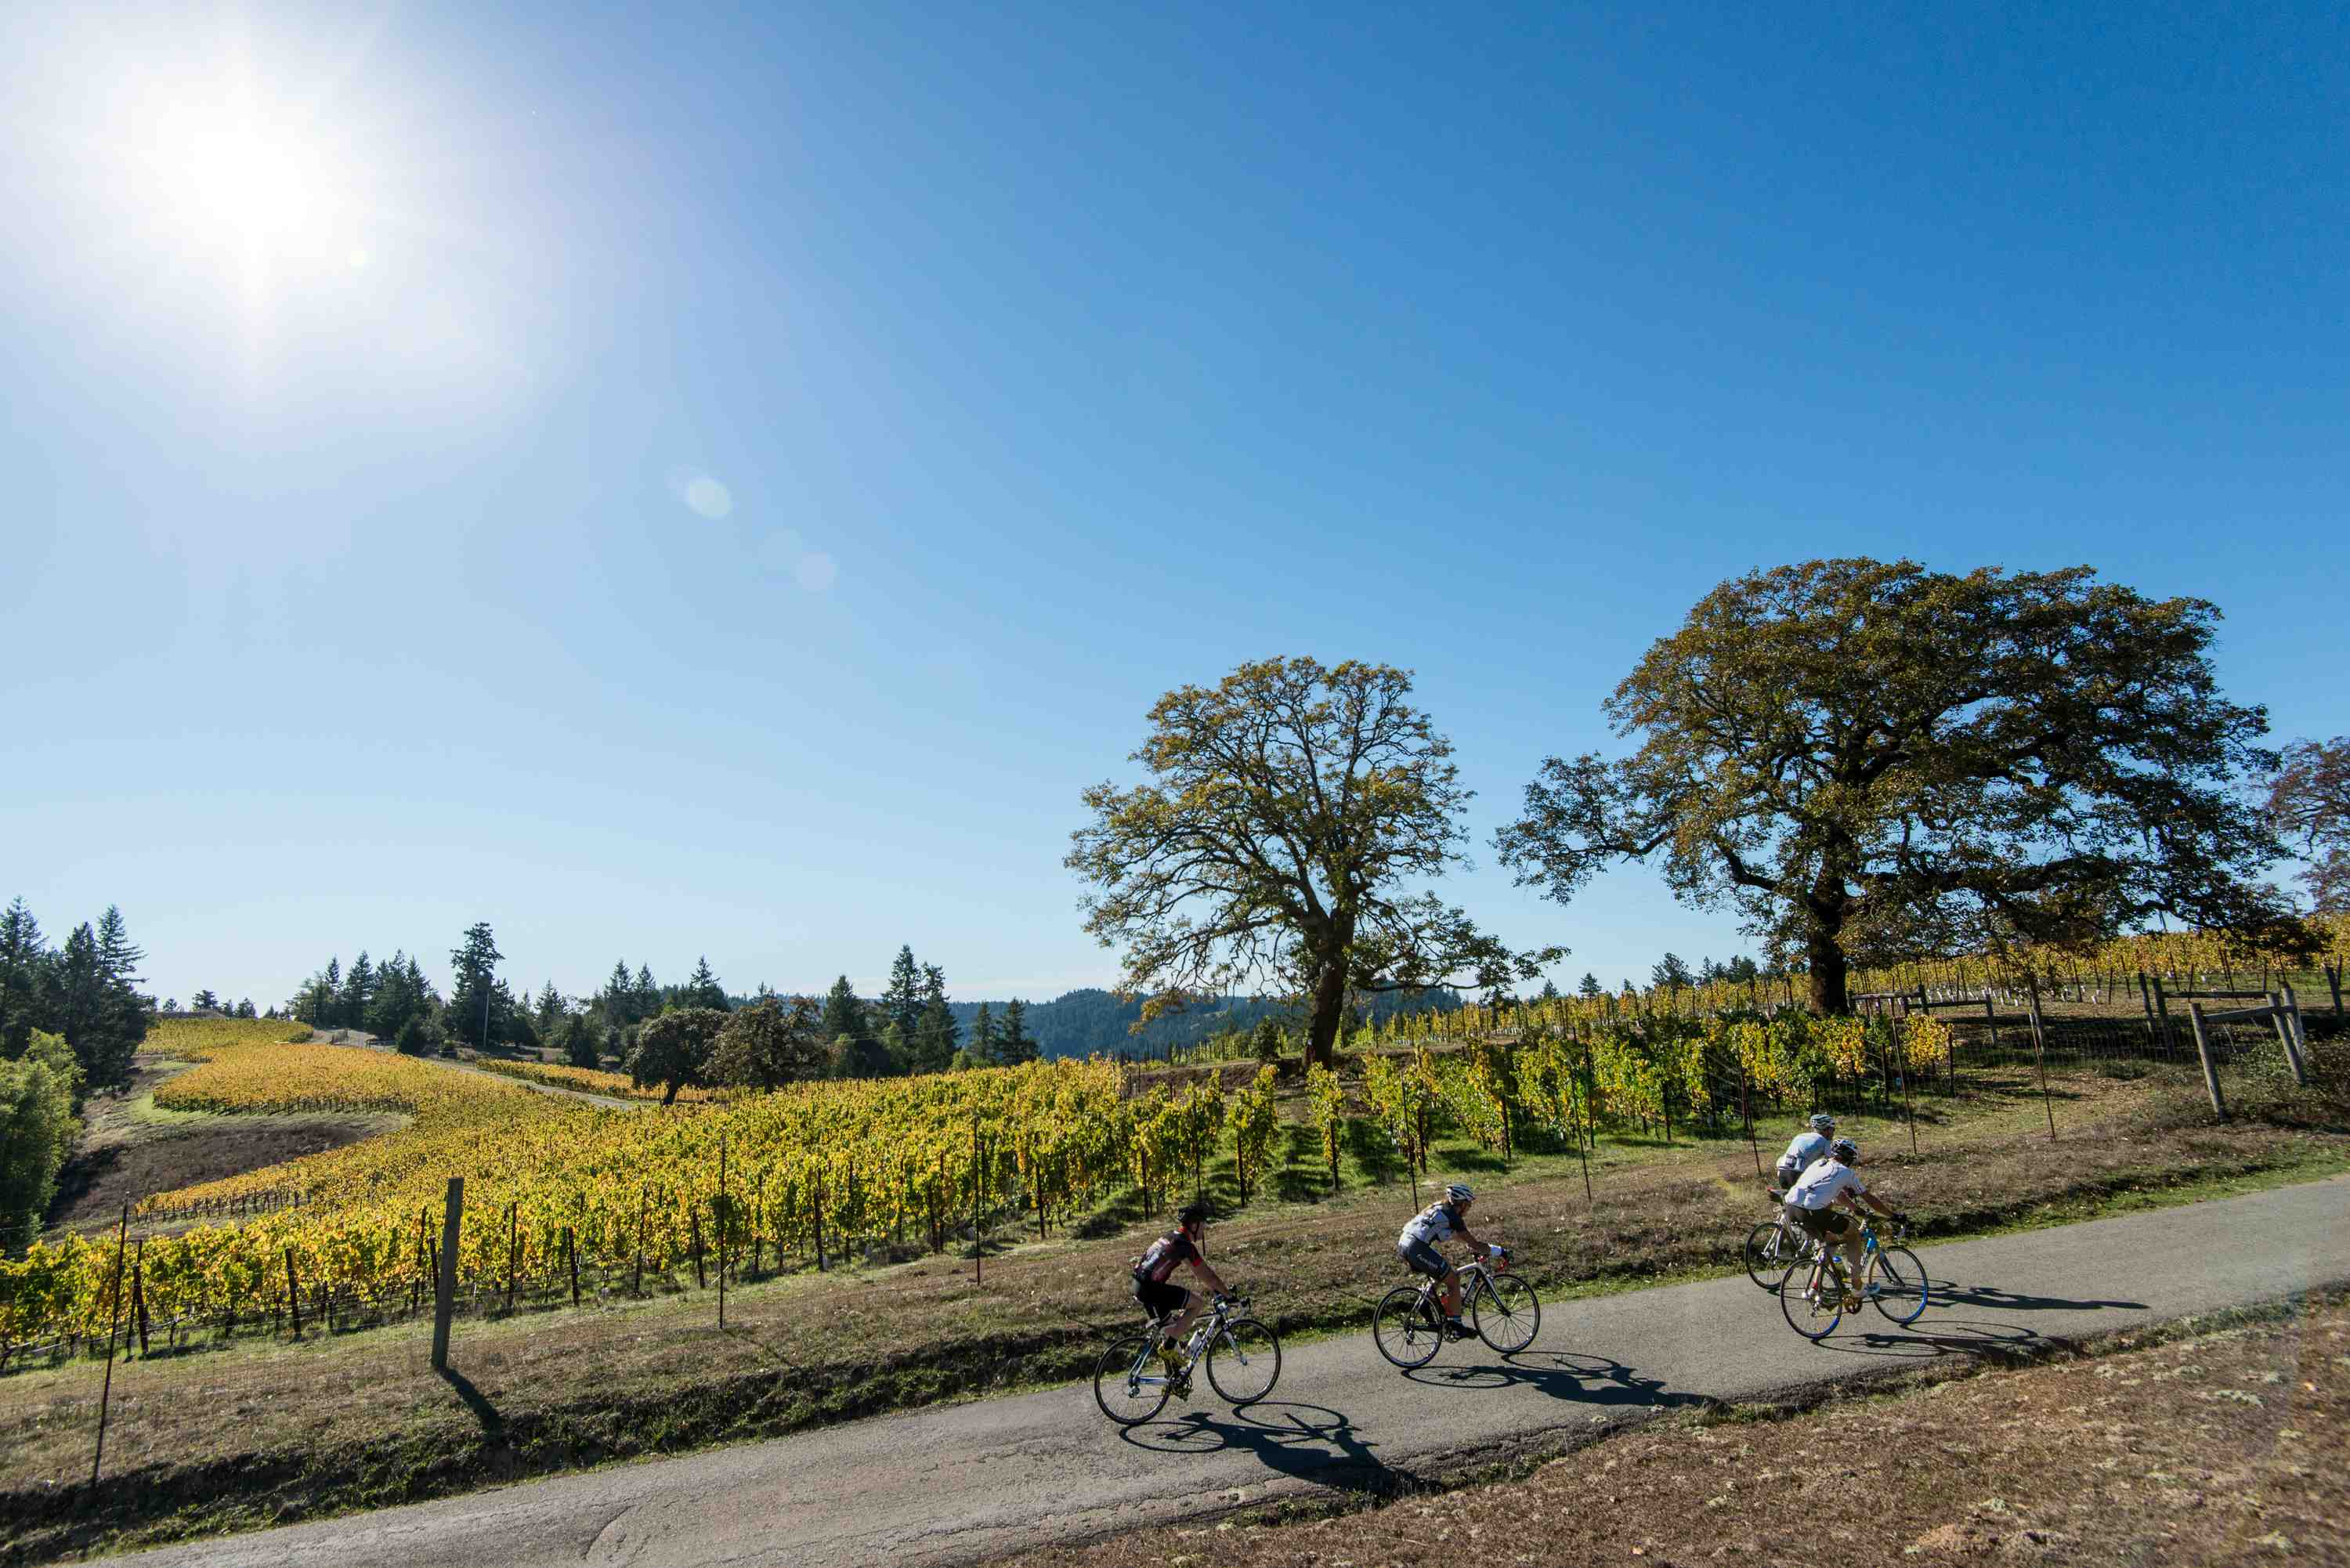 Go on a Wine Country bicycle tour with Getaway Adventures in Sonoma County, California